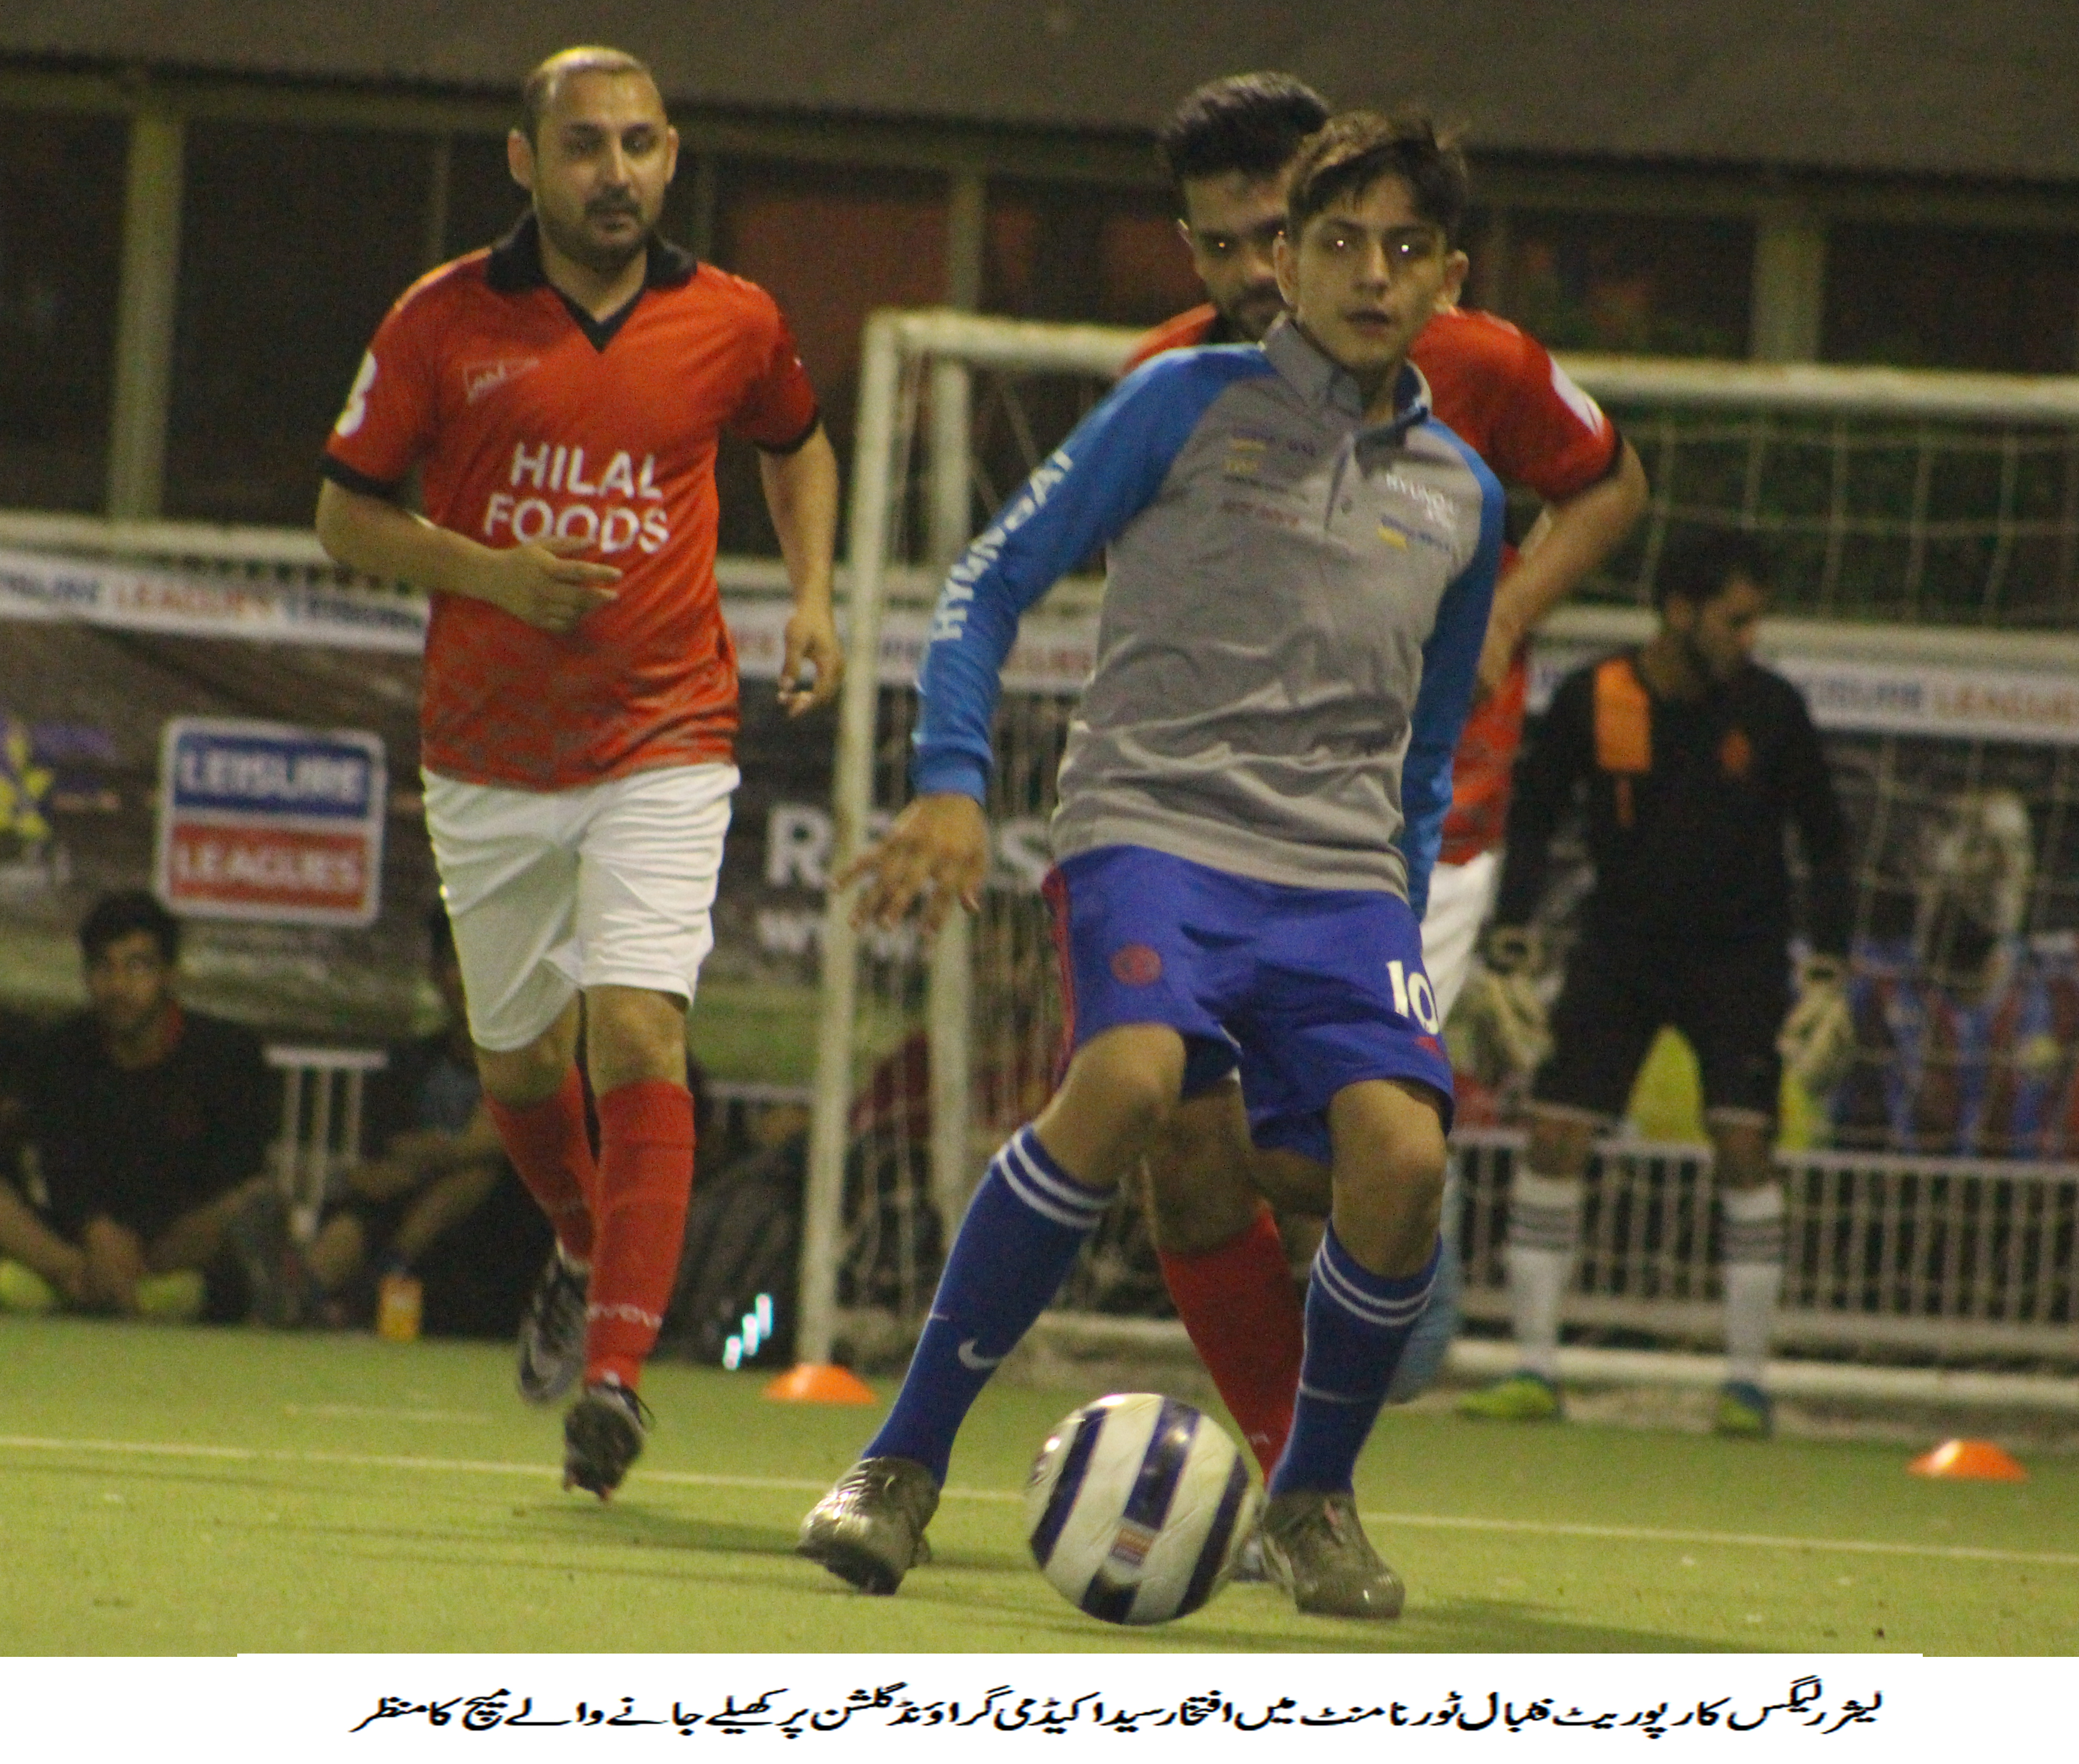 HXL thrashes Hilal Foods on opening day of  Leisure Leagues Corporate League